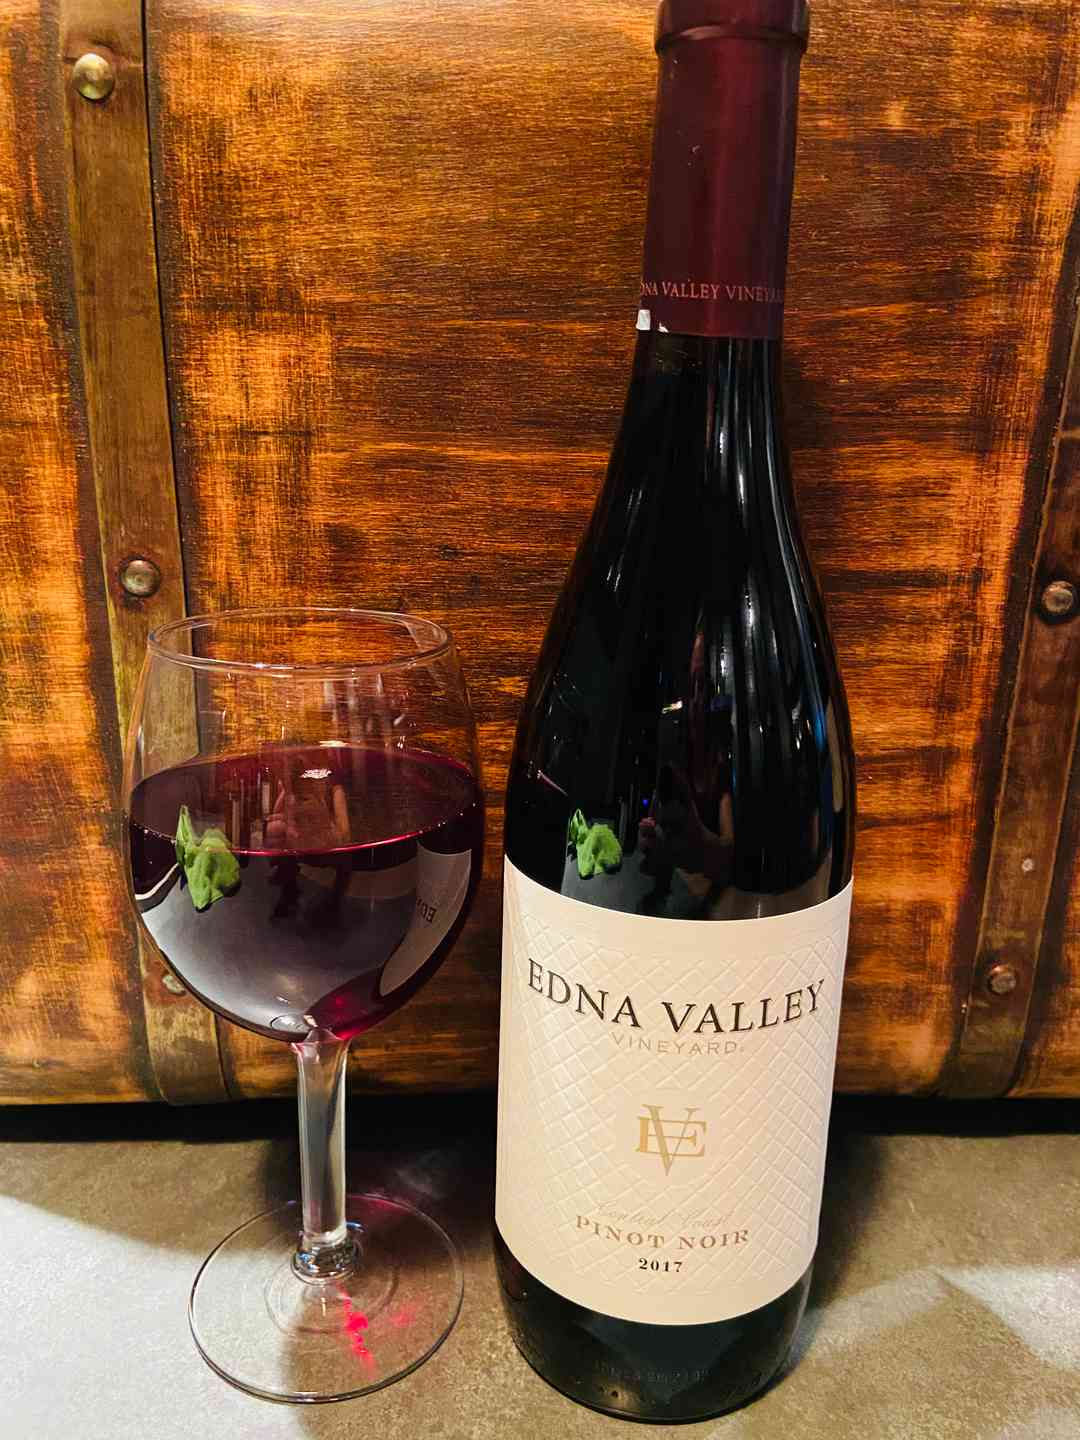 Edna Valley Vineyards Pinot Noir